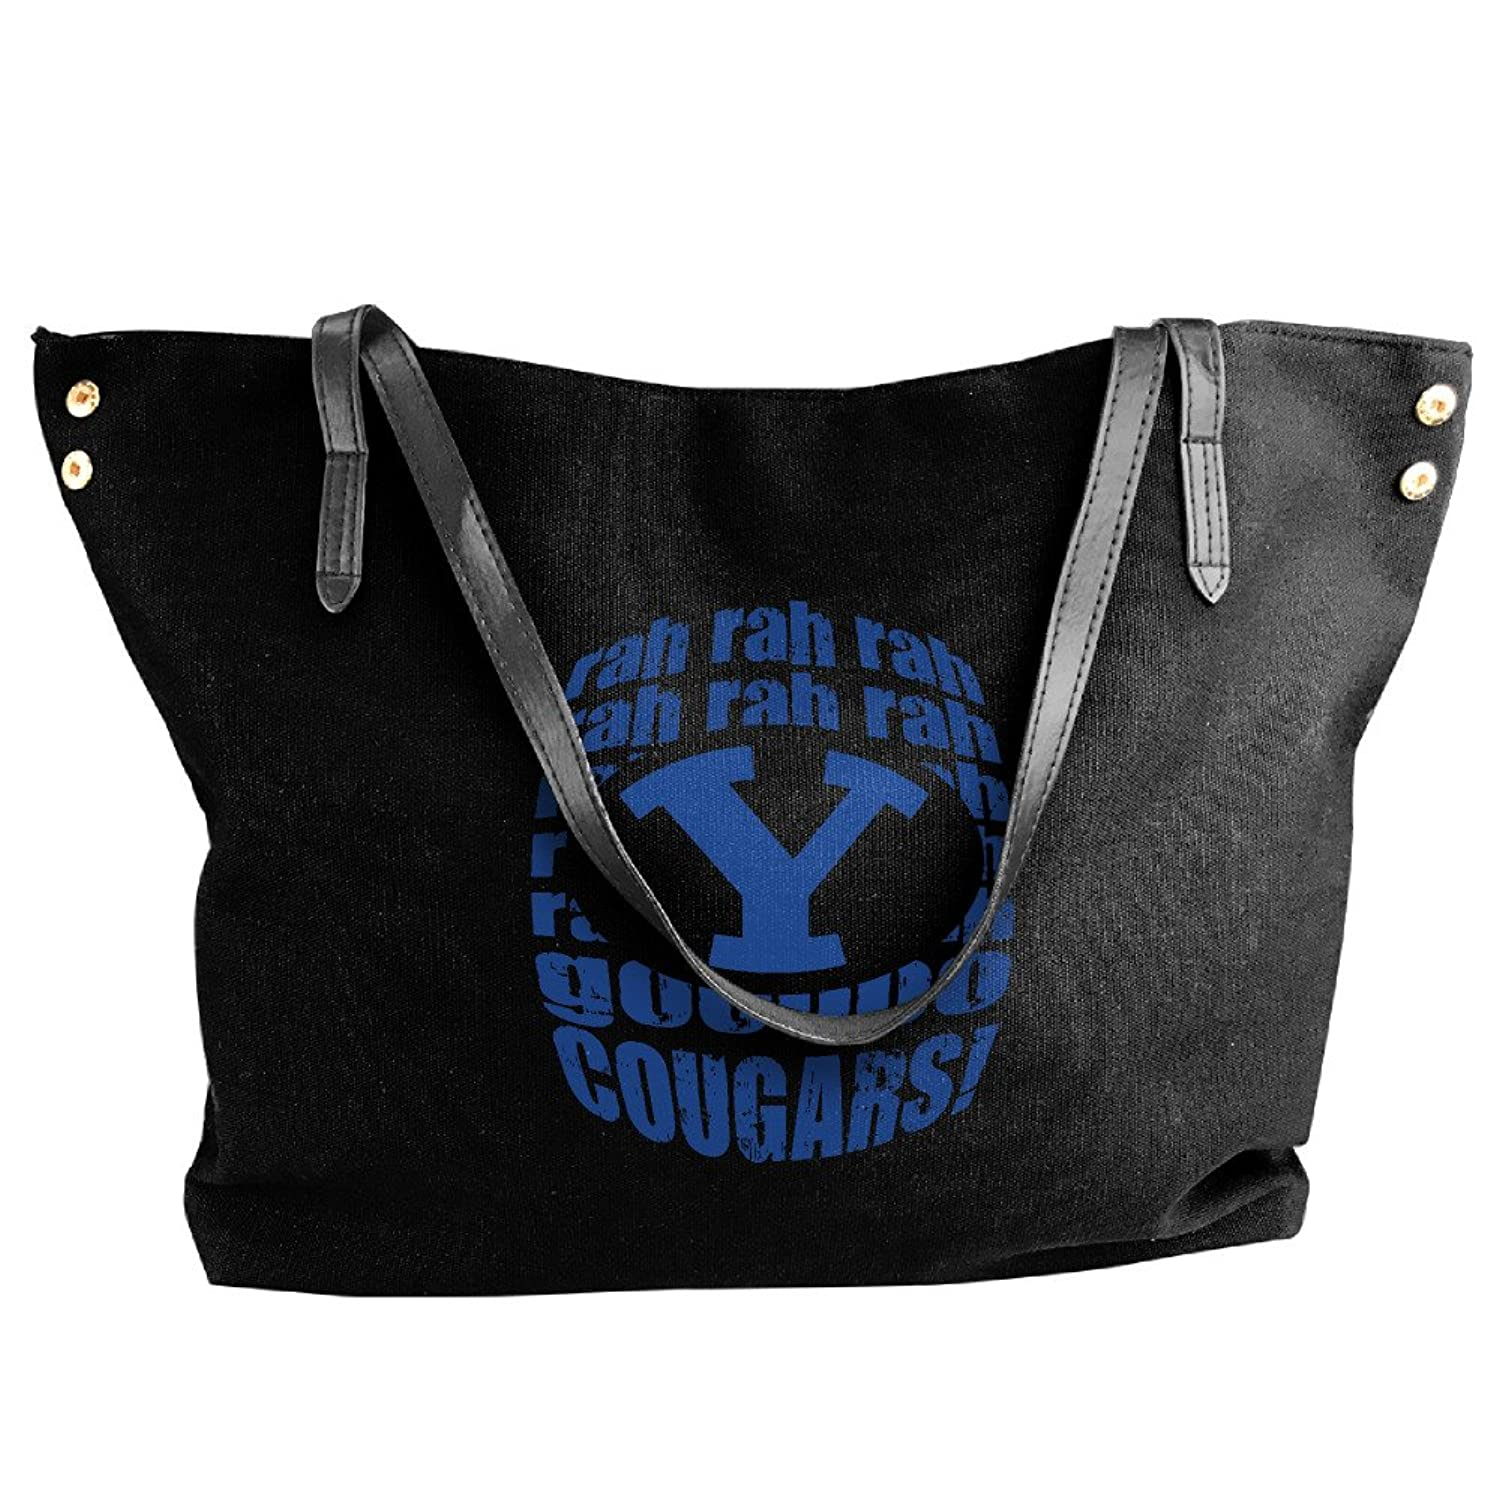 The Y Byu Cougars Women Shoulder Bags